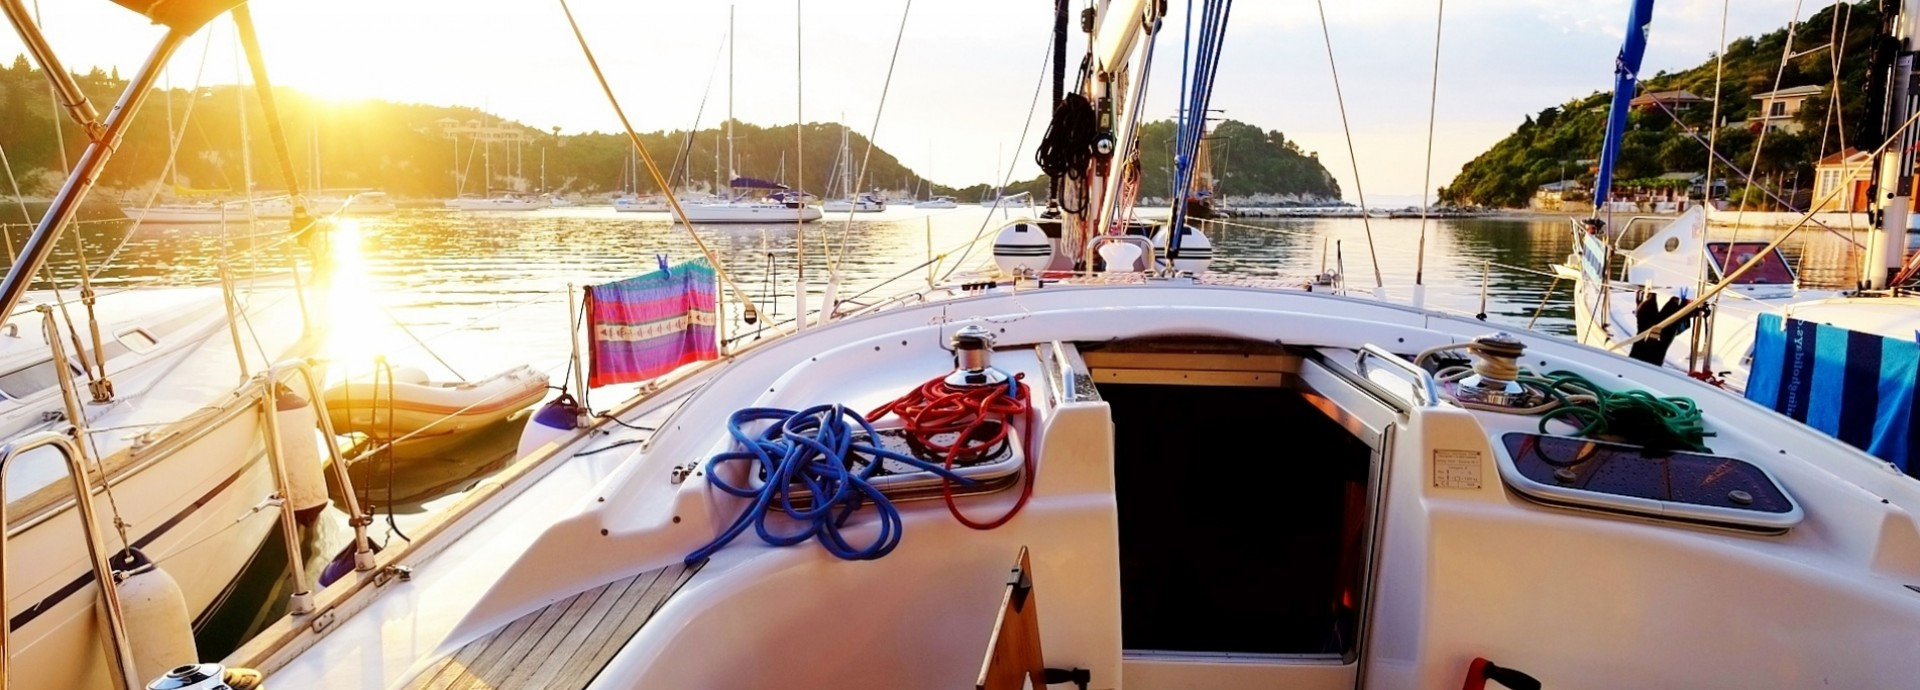 Rod Warren's sunset in Lakka, Paxos Island, on a Beneteau 393